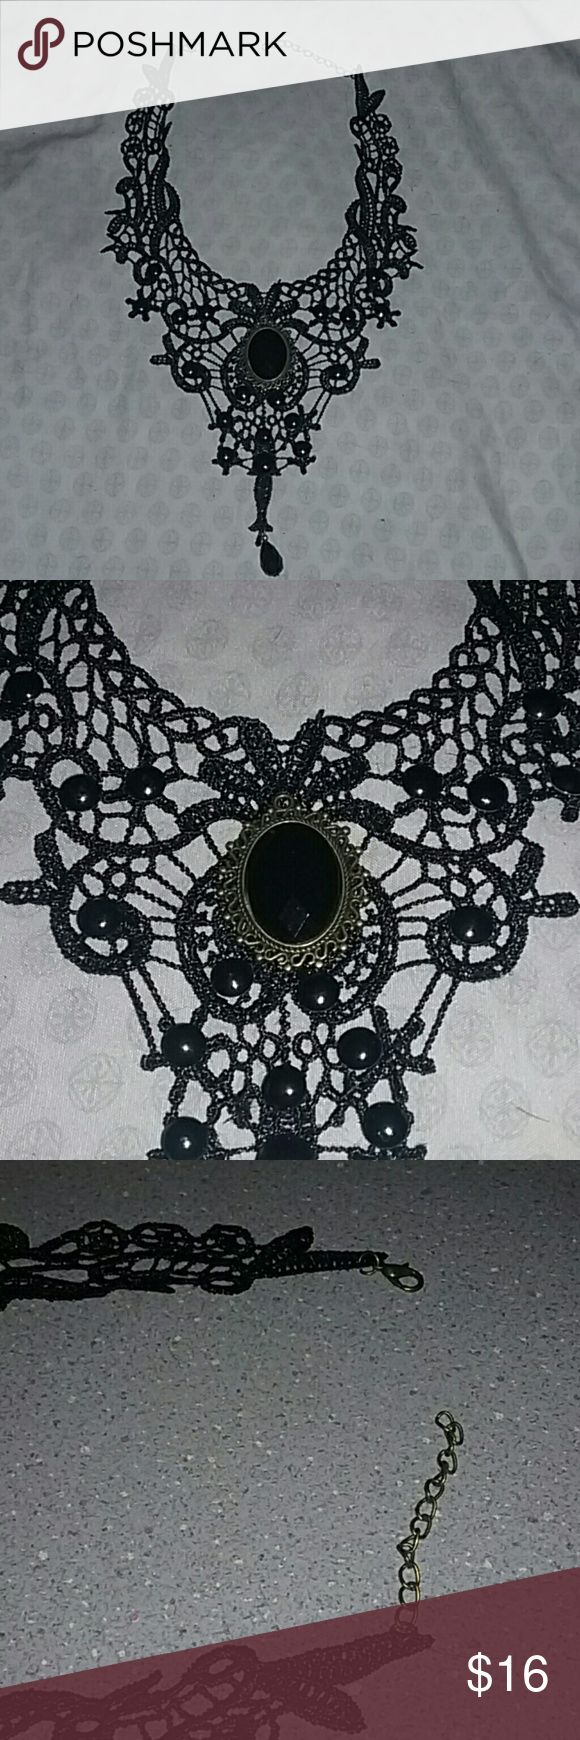 Black lace/crochet choker necklace #victorian #gothic #rocker #punk   Lobster clasp closure Black pendant with gold metal plating around it  The spots on the pendant is just from the flash/lighting. undefined Jewelry Necklaces